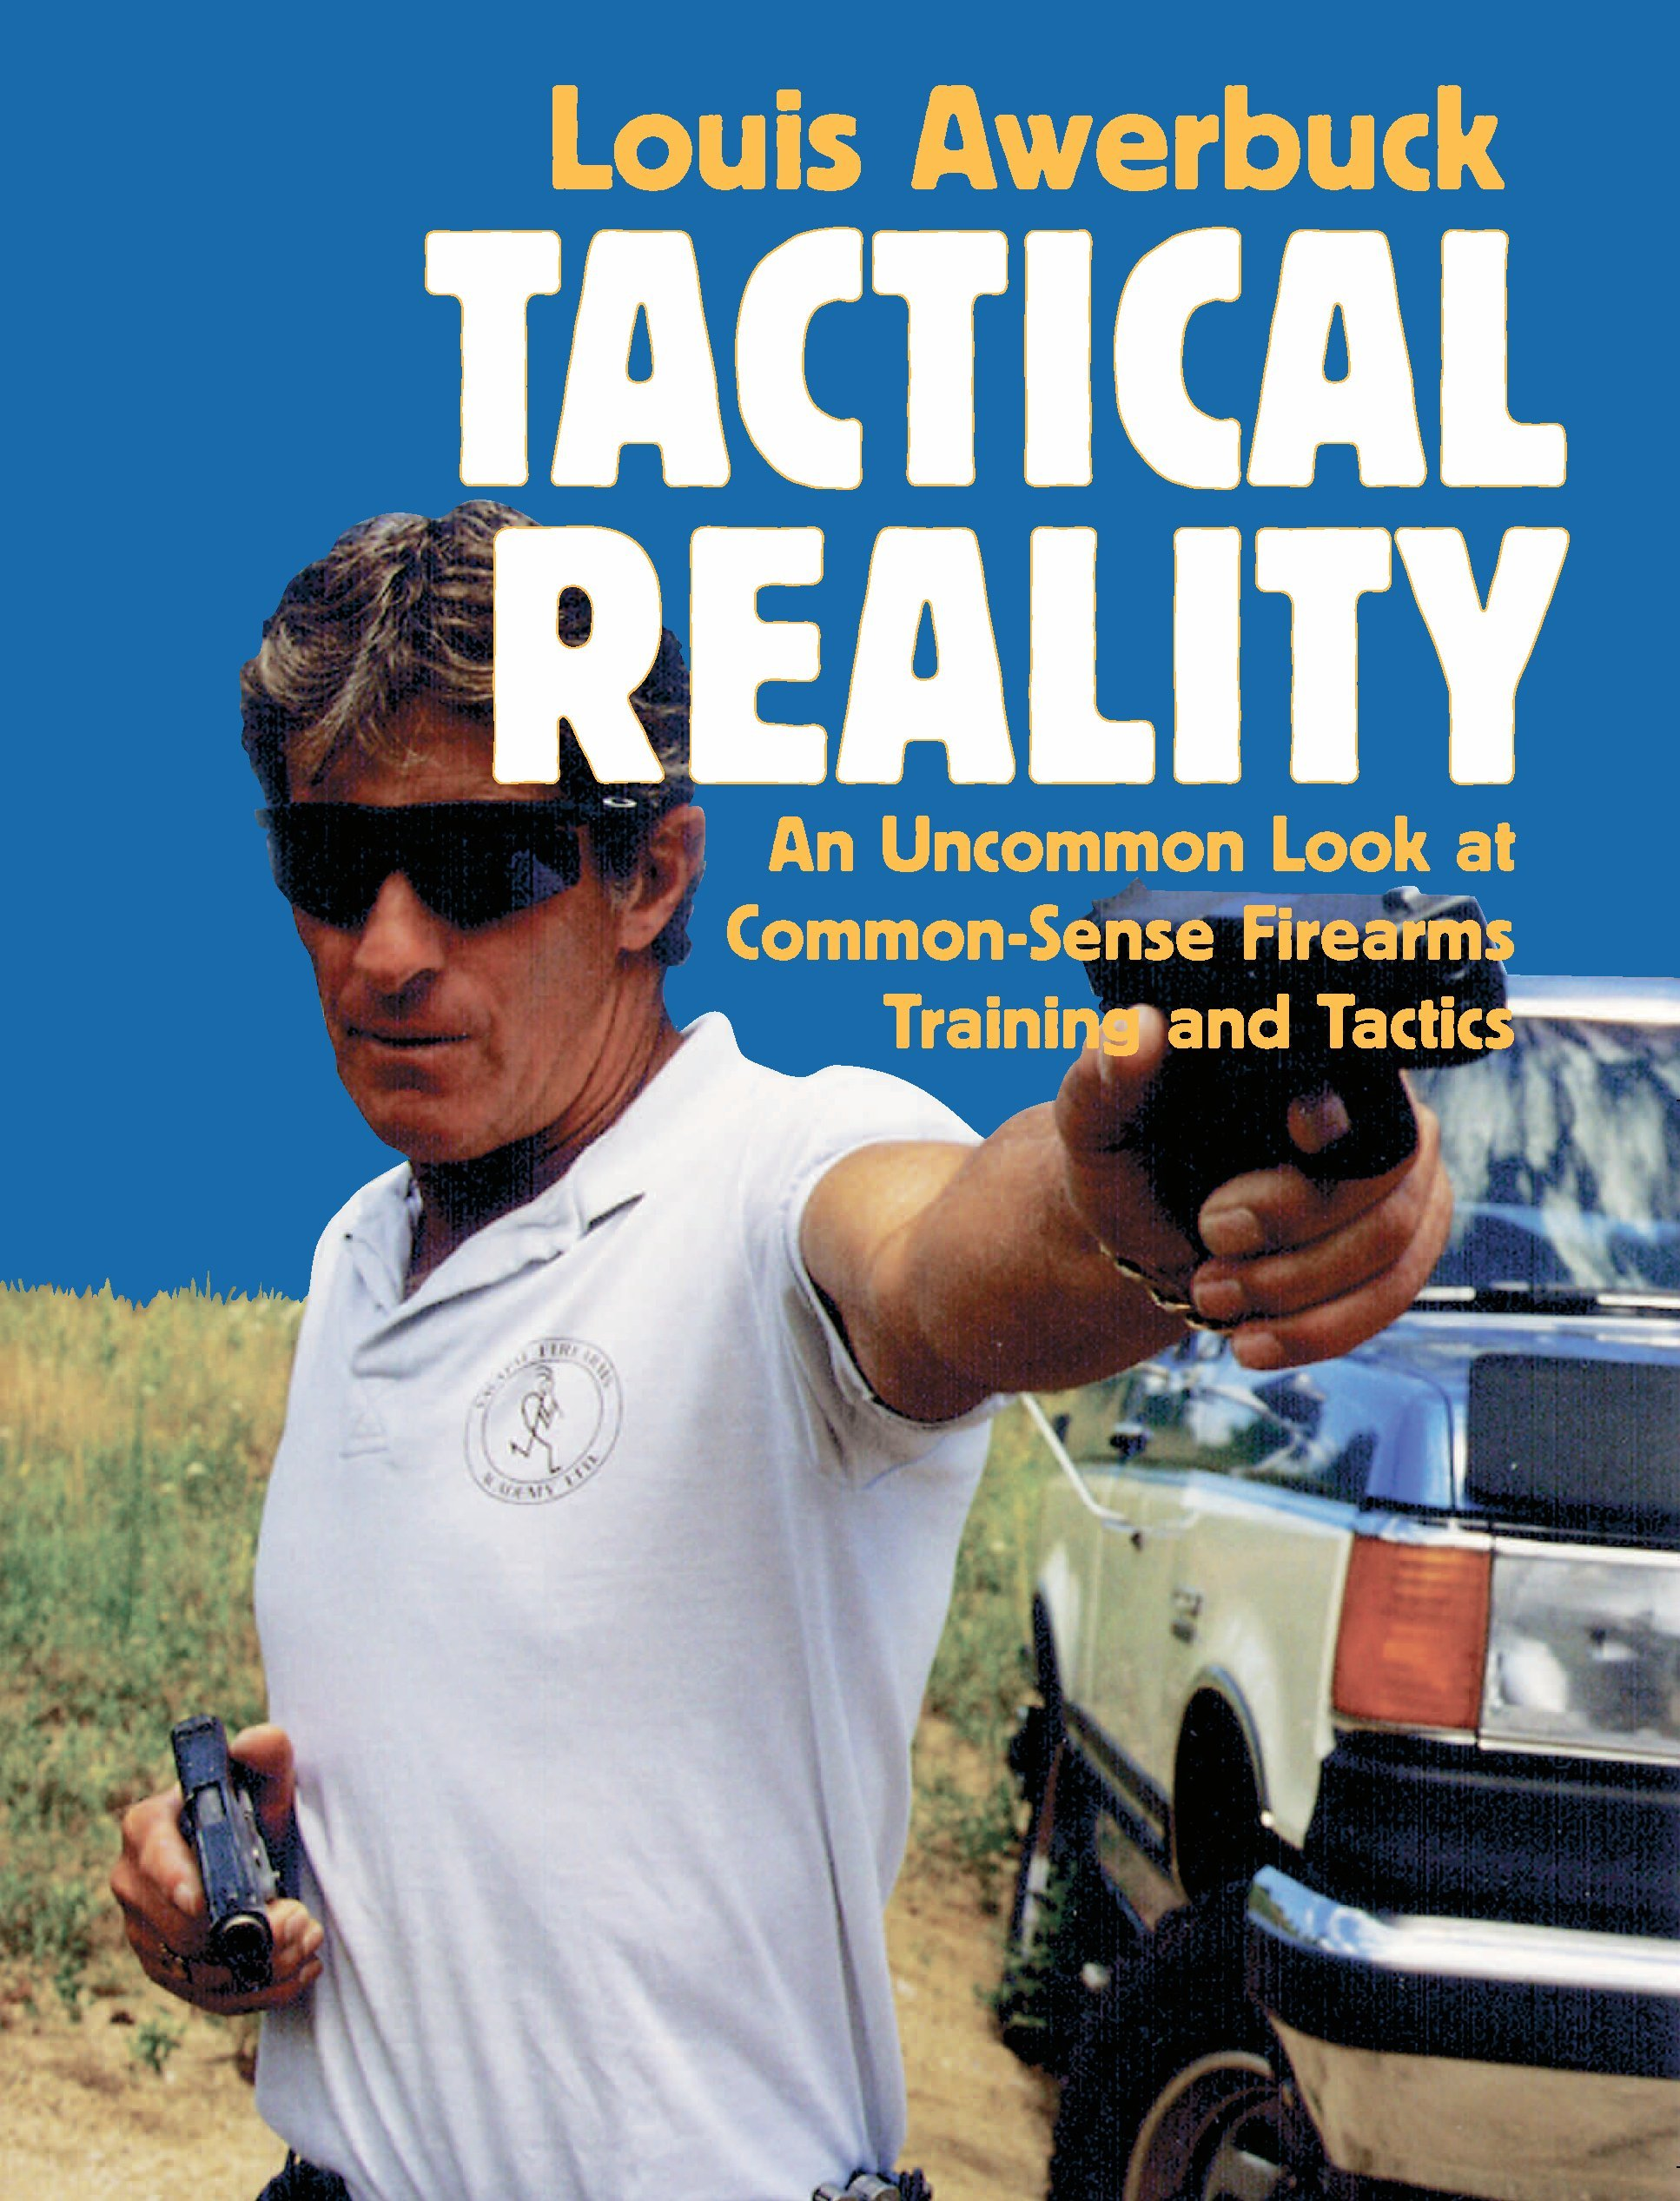 Tactical Reality: An Uncommon Look at Common-Sense Firearms Training and Tactics (English Edition)